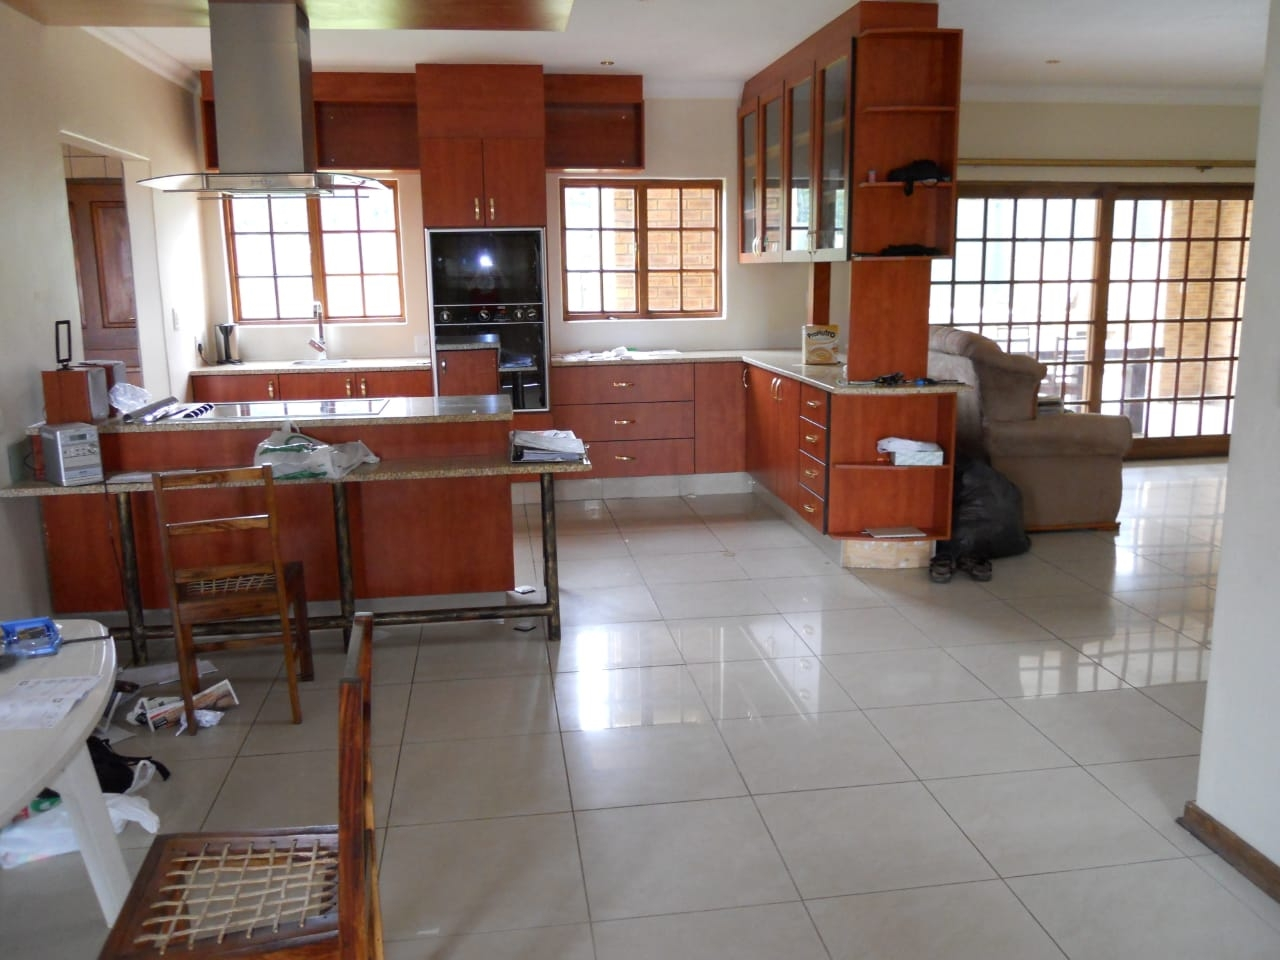 View of kitchen from dining area with lounge on right